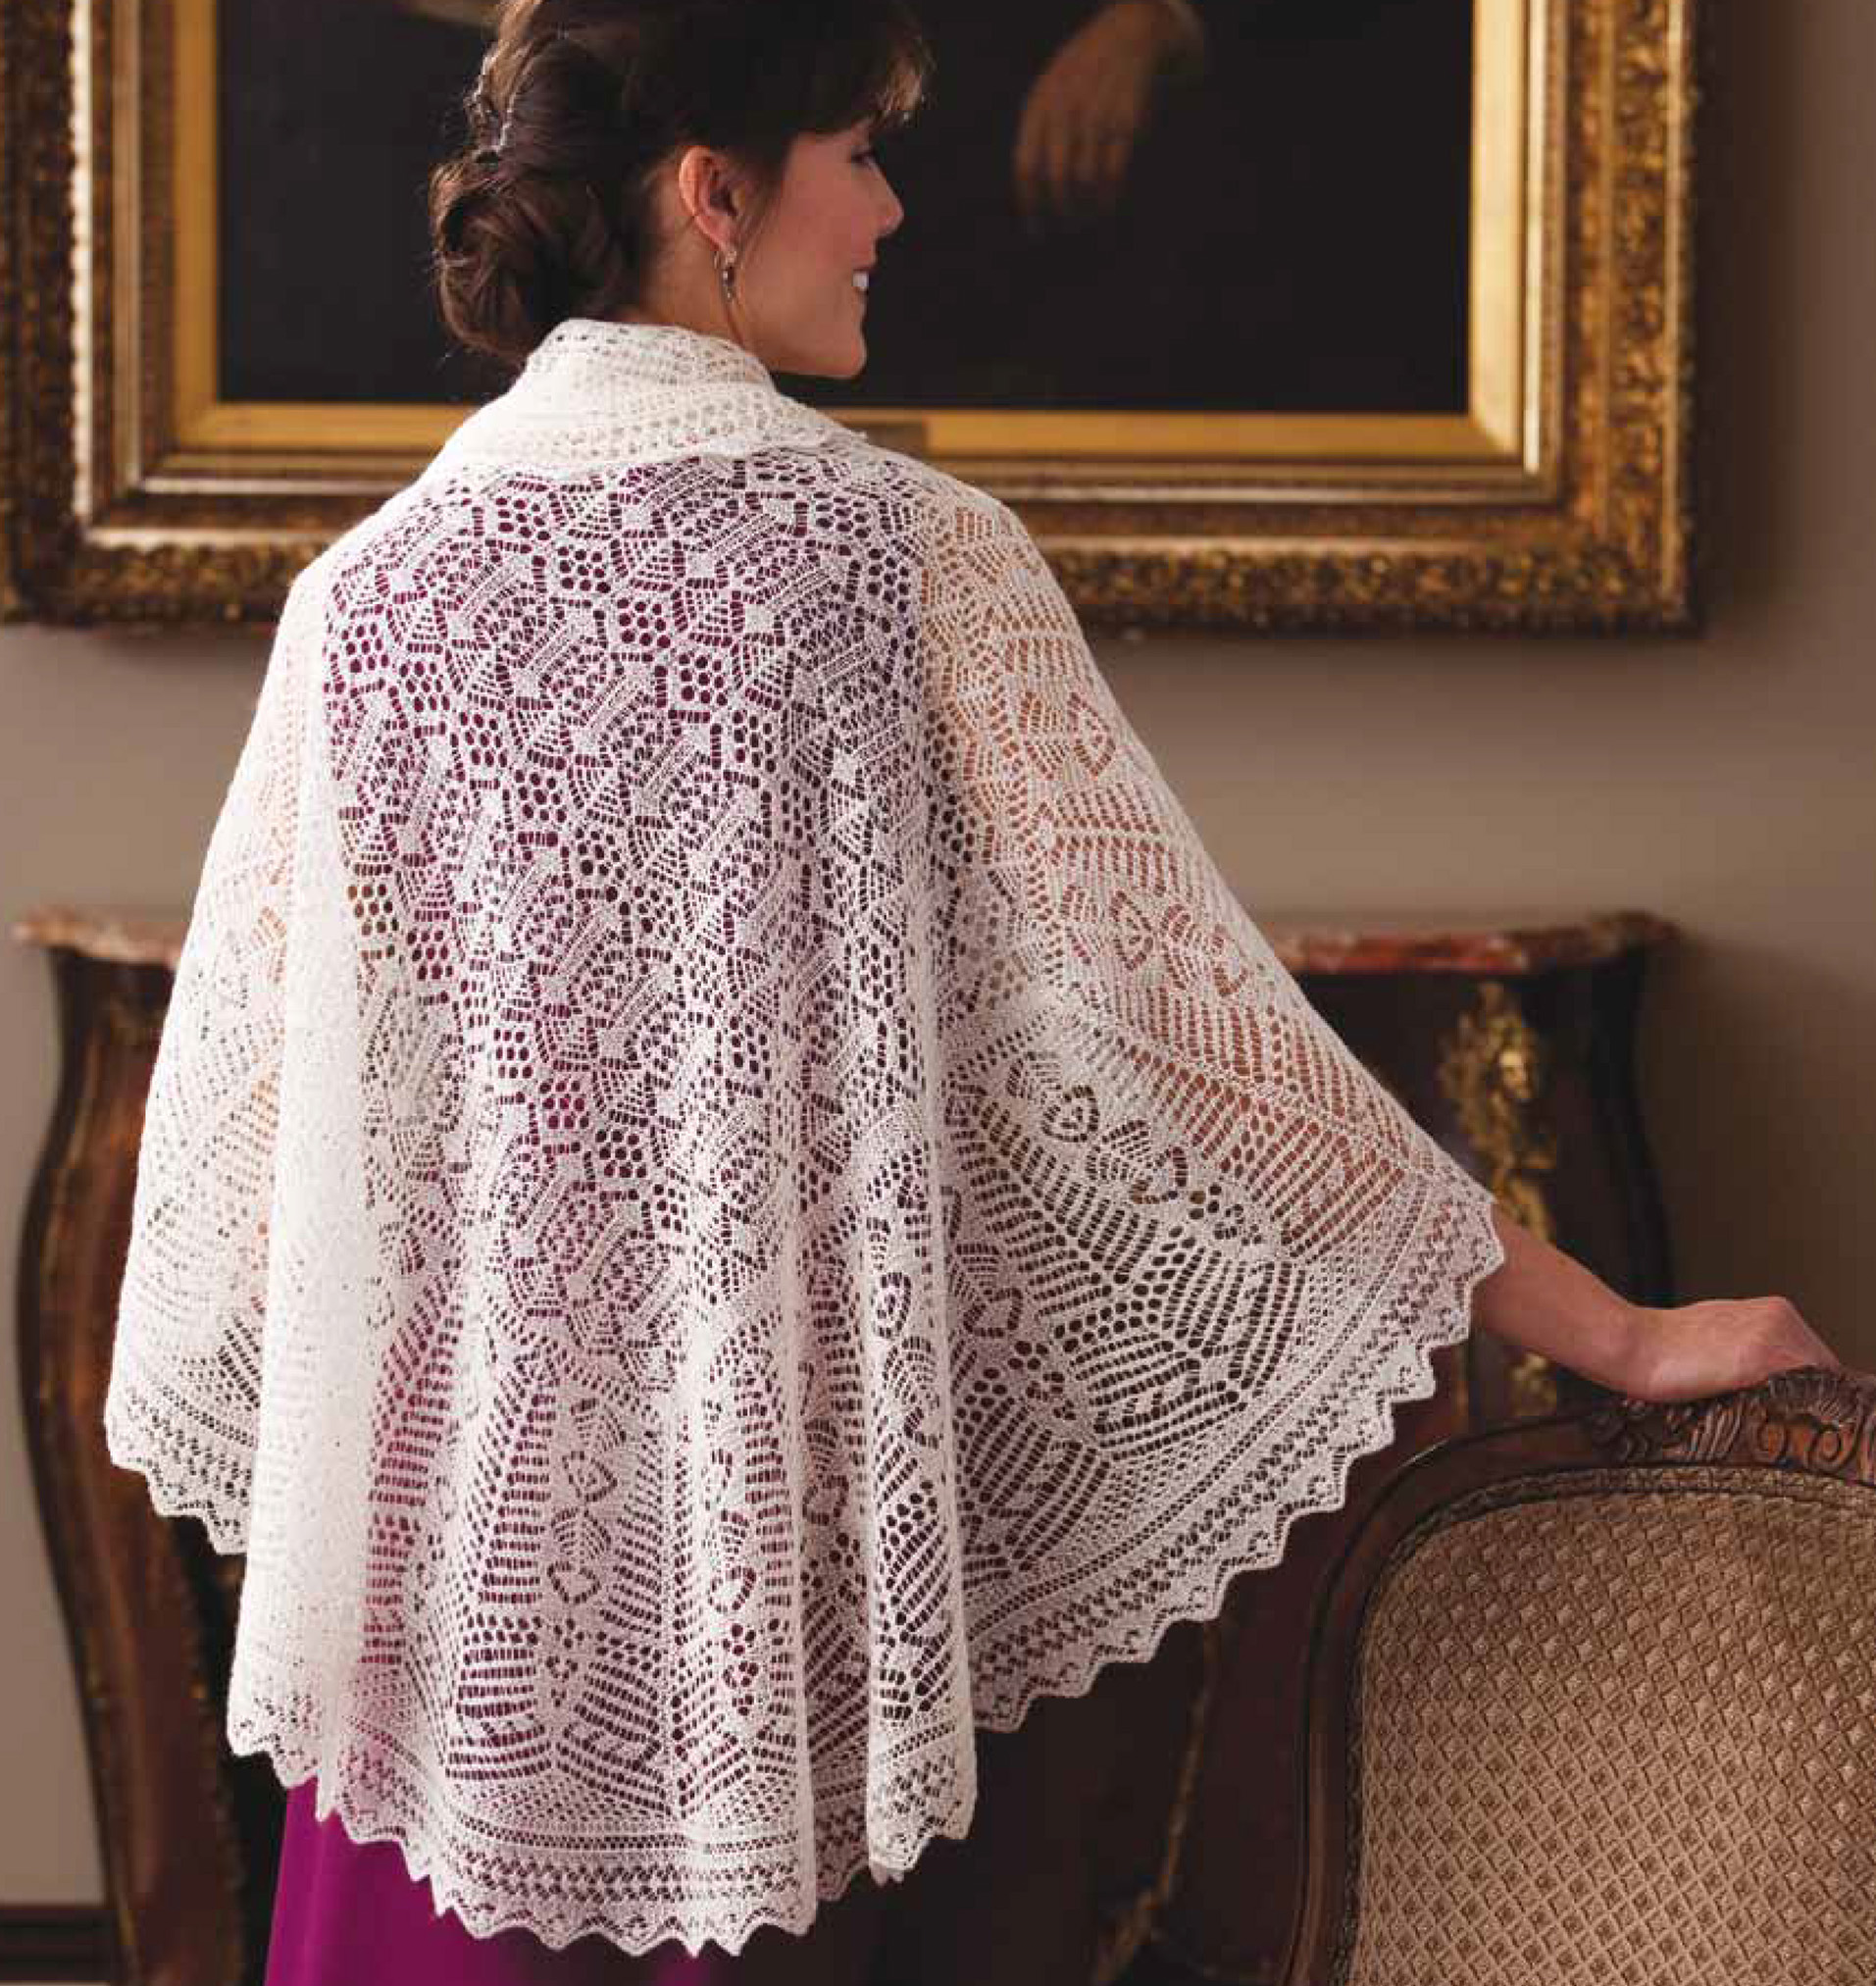 Over the edge: Knitting patterns inspire! – Cotton Clouds\' Talk